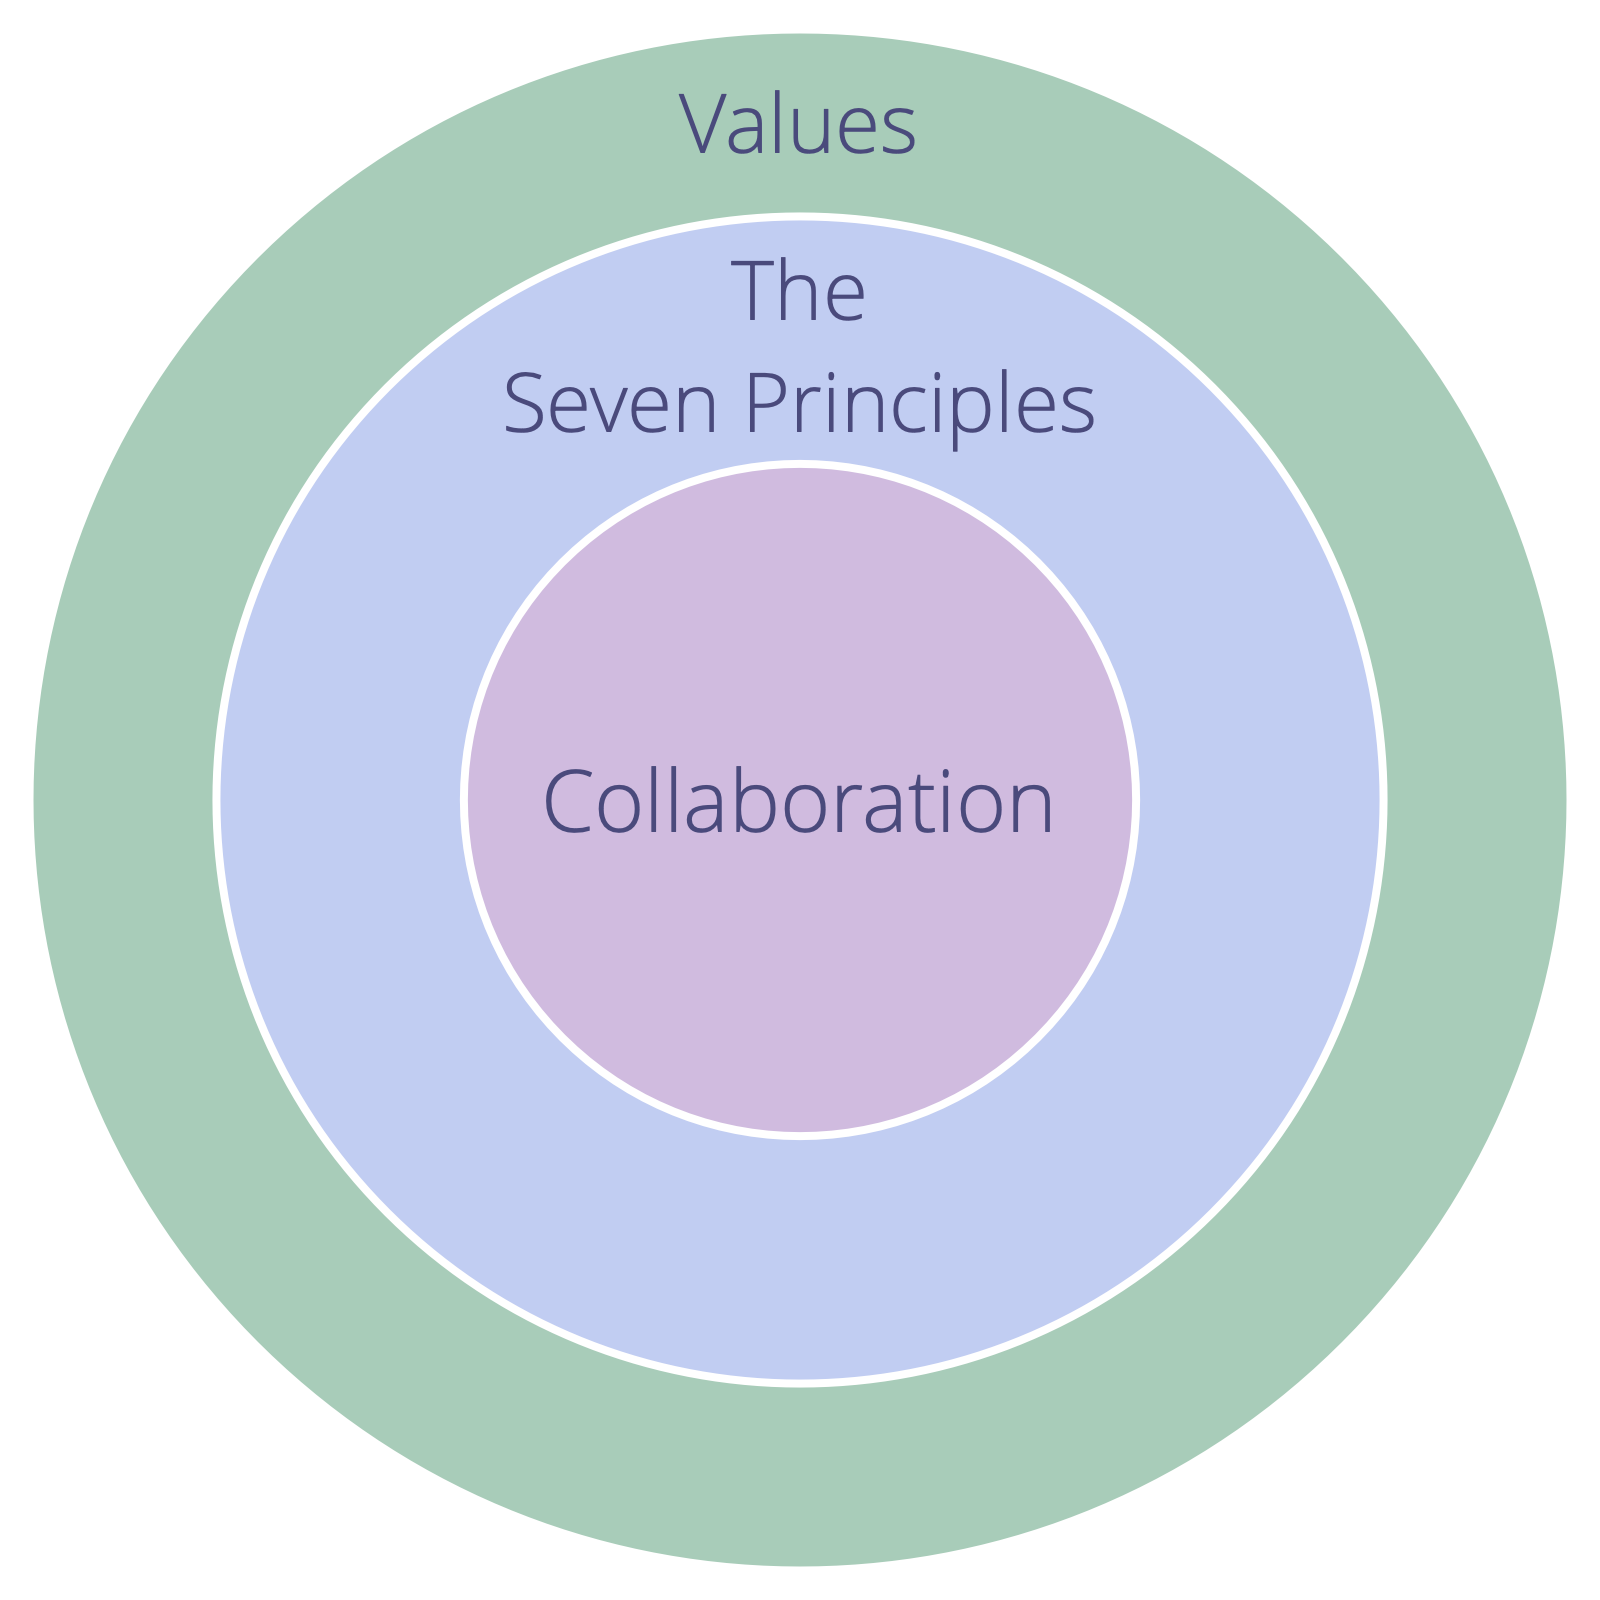 An organization's values need to embrace the Seven Principles